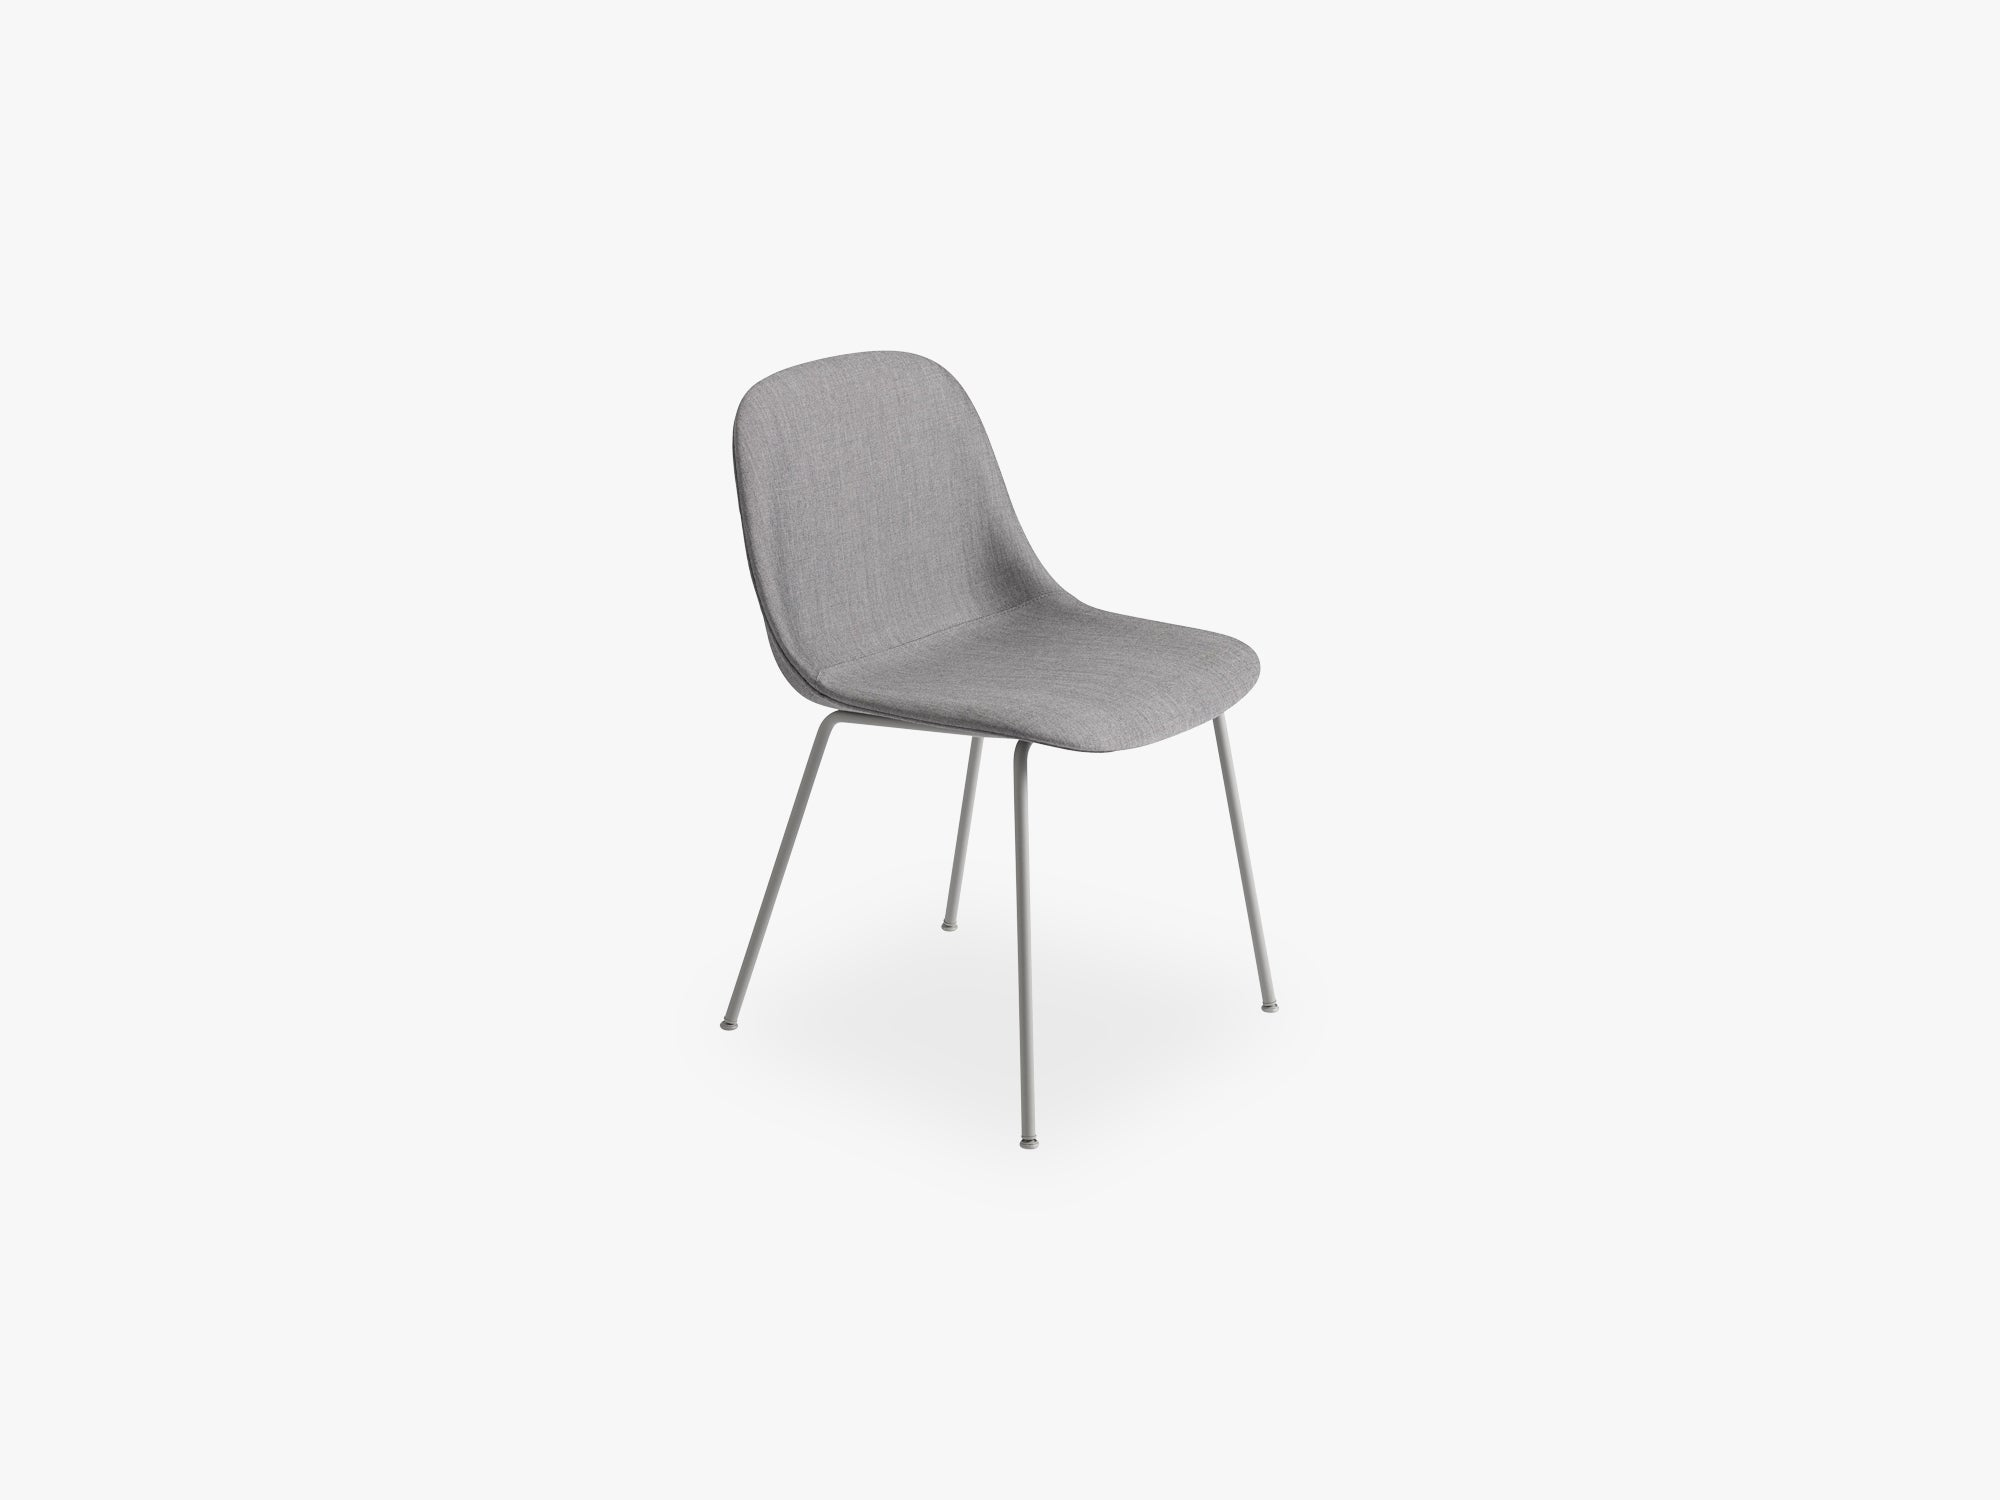 Fiber Side Chair - Tube Base - Textile Shell, Remix 133 / Grey fra Muuto